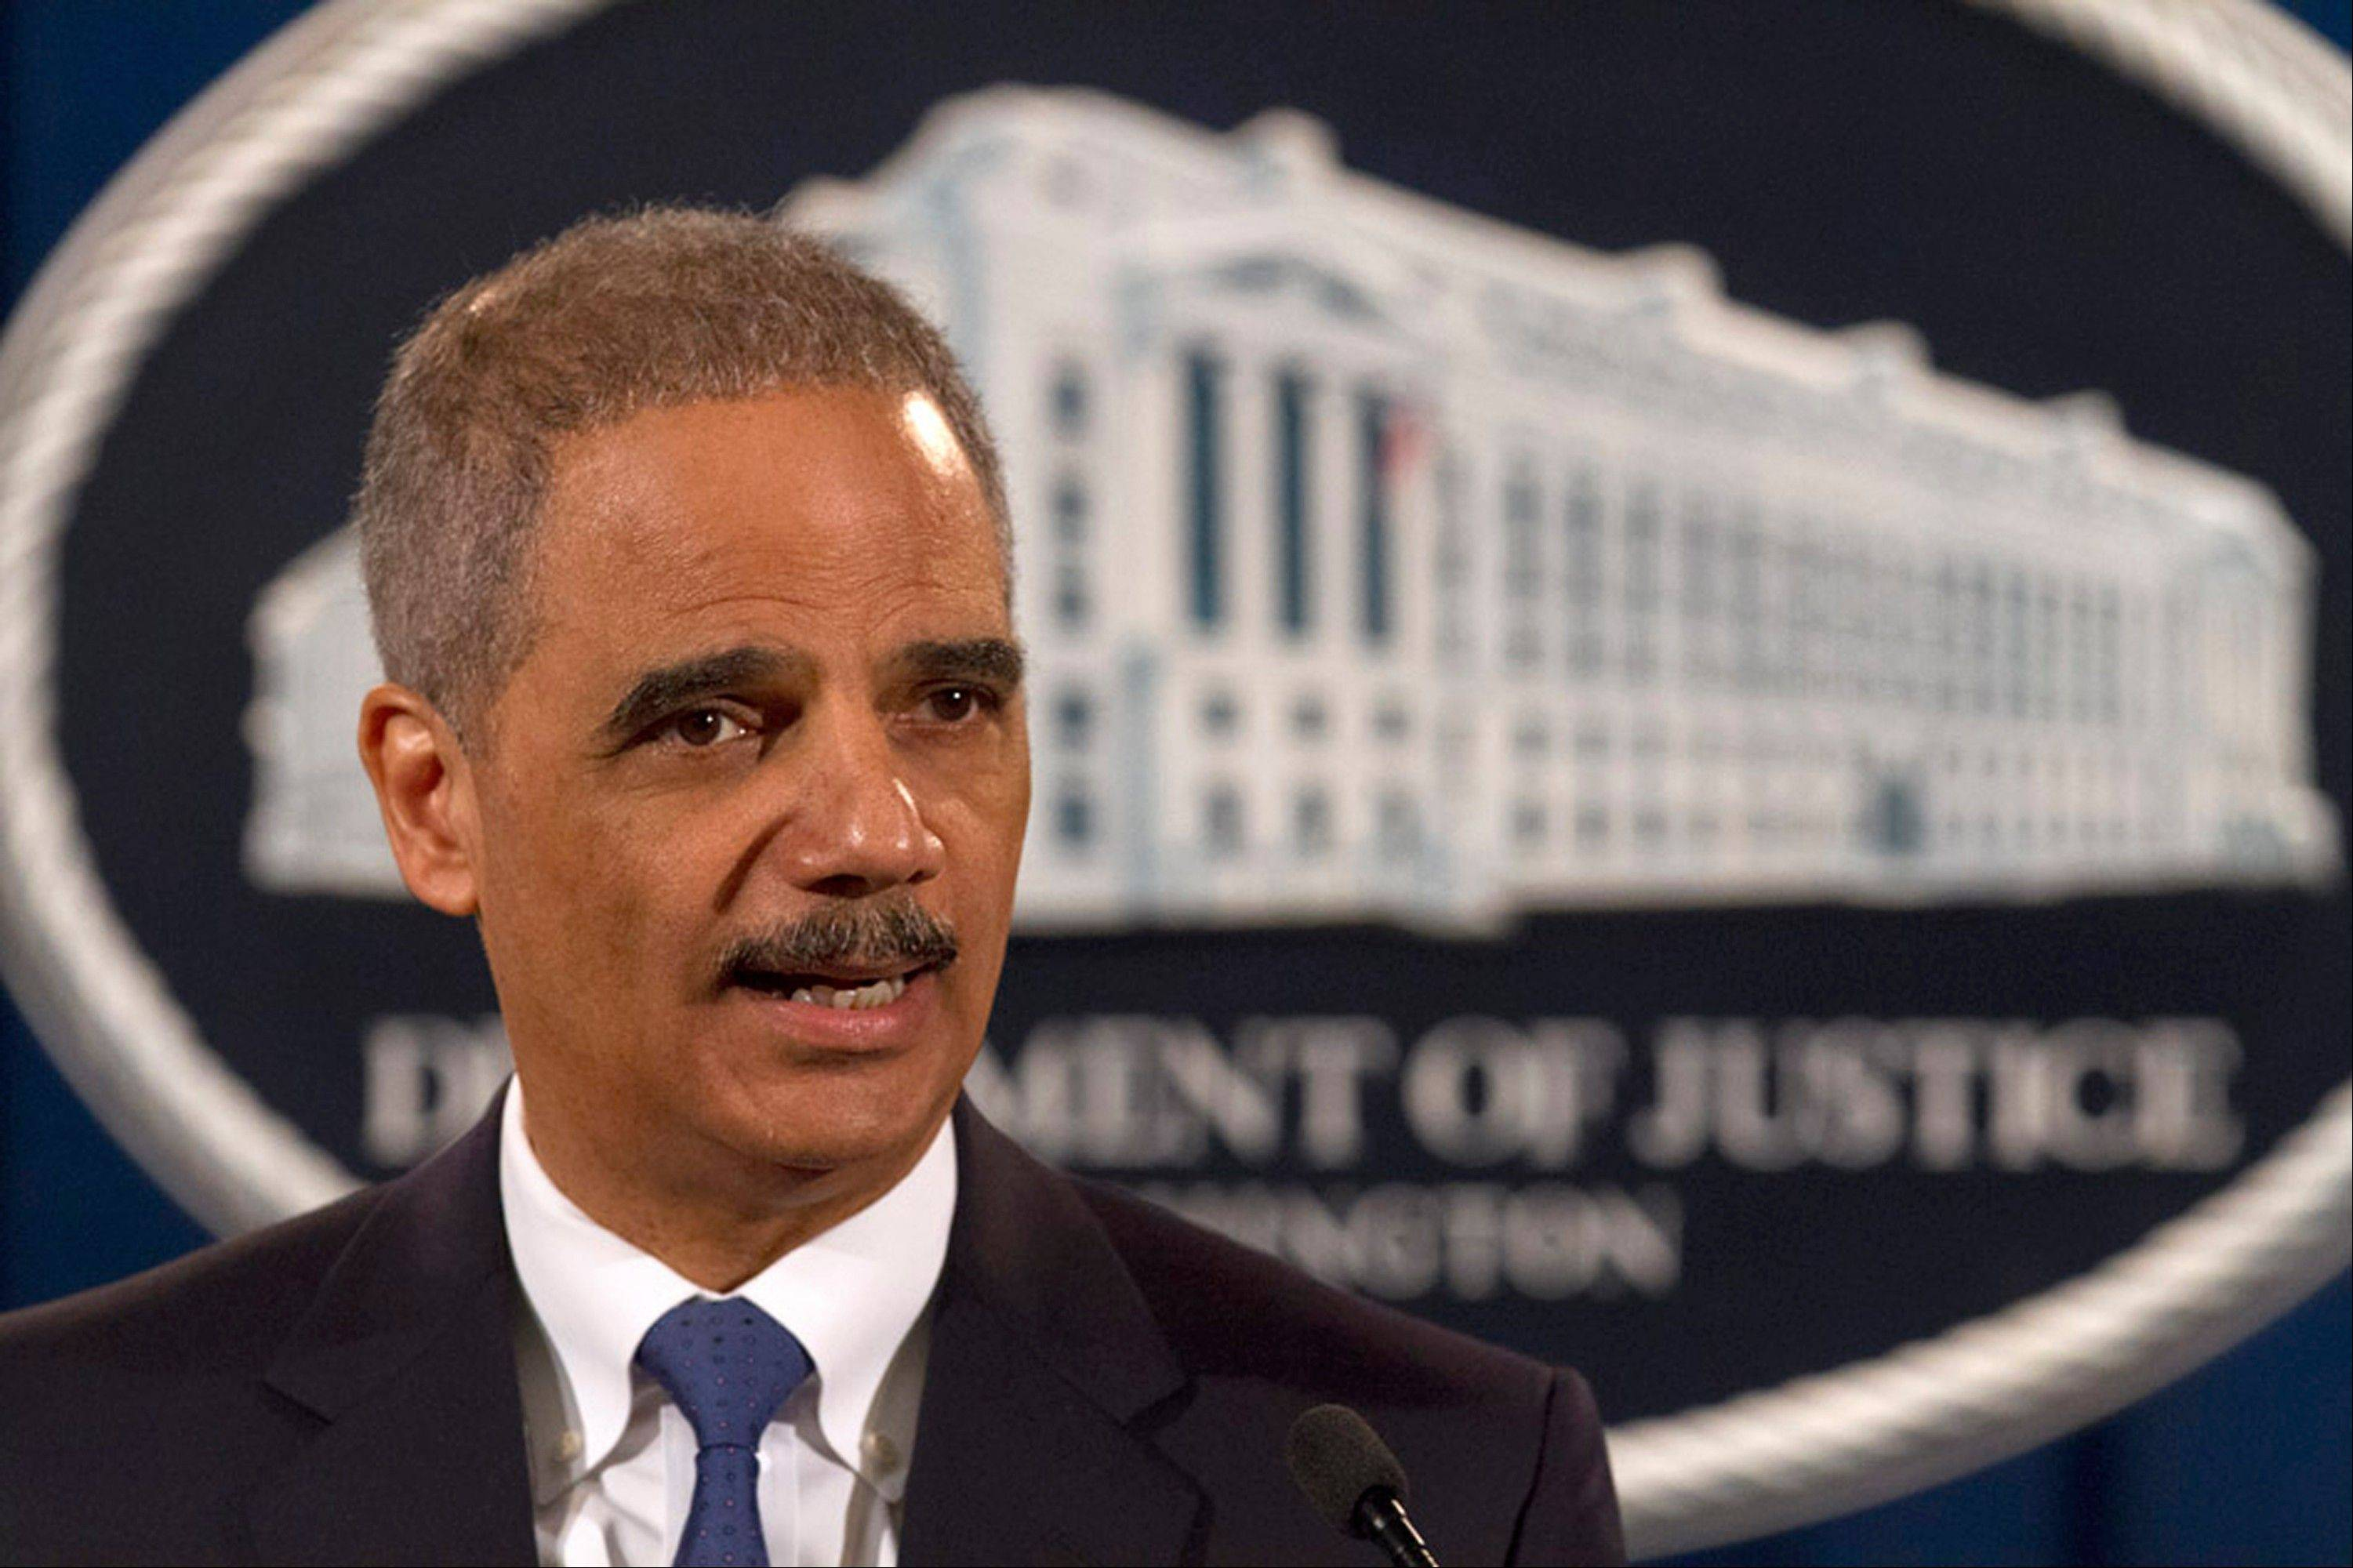 Attorney General Eric Holder speaks at the Justice Department in Washington Tuesday. The U.S. government accused Standard & Poor's of inflating ratings on mortgage investments to boost its bottom line, taking aim at a key player in the run-up to the financial crisis.